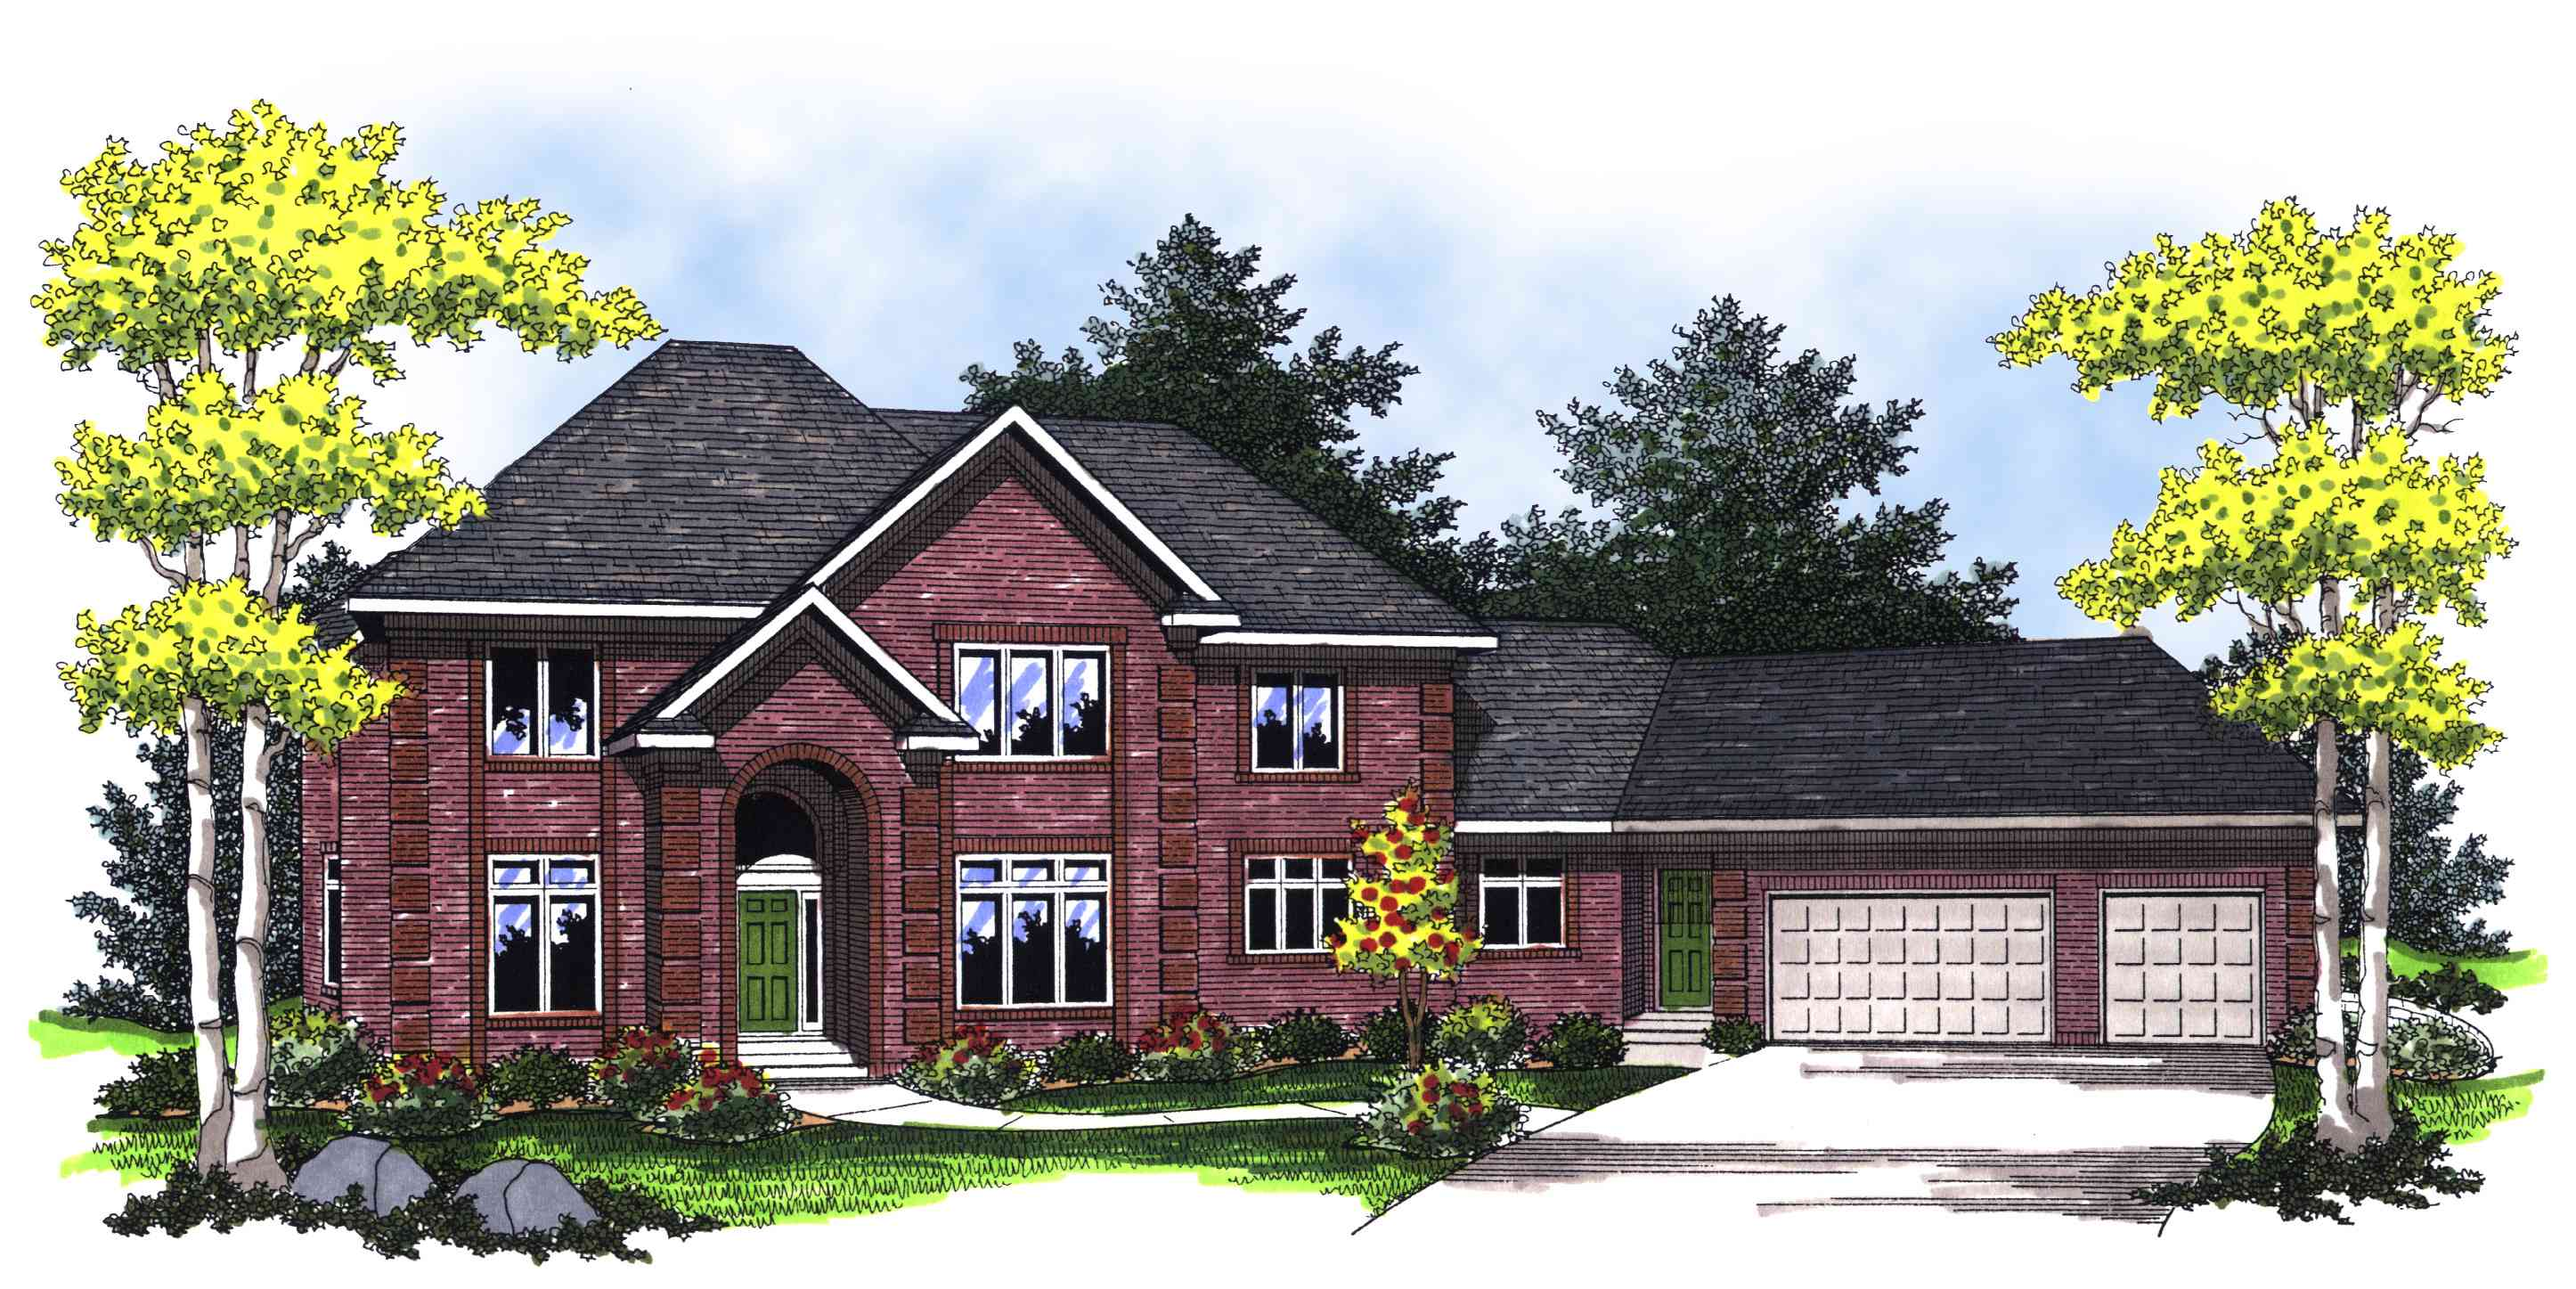 Traditional Two Story With Brick Facade